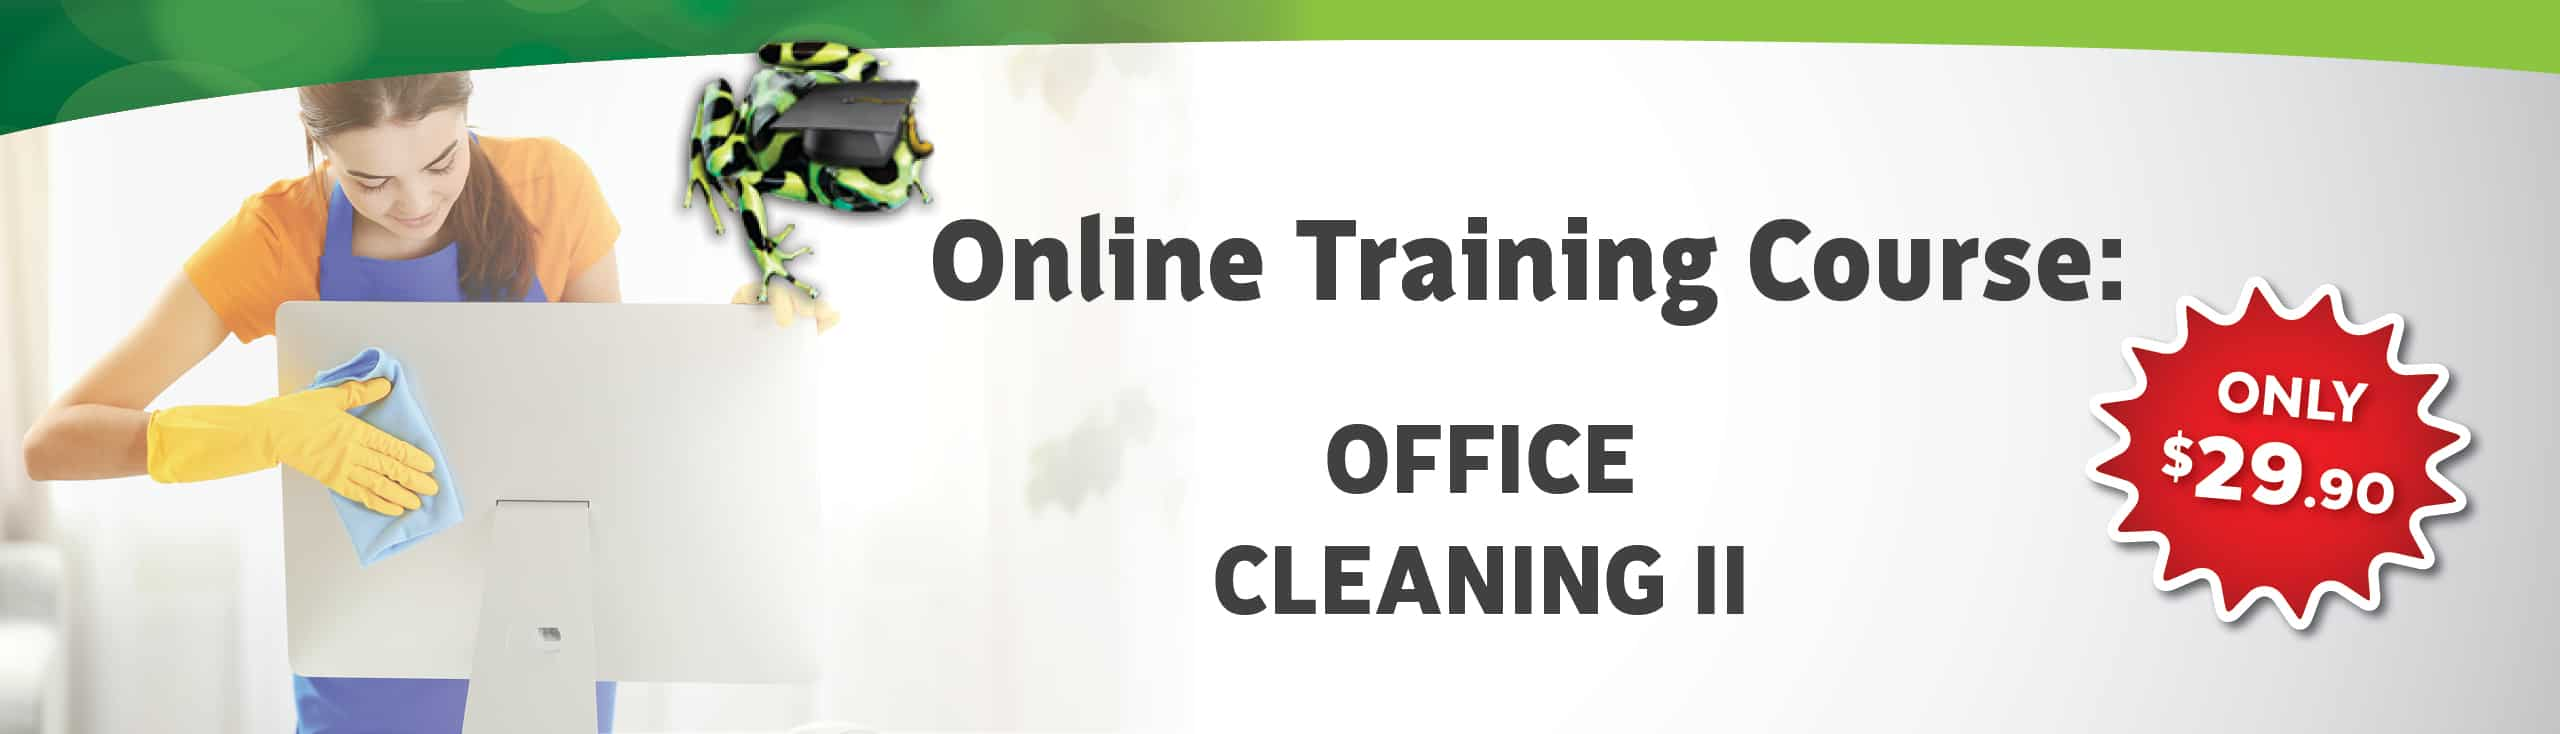 Office Cleaning II Course